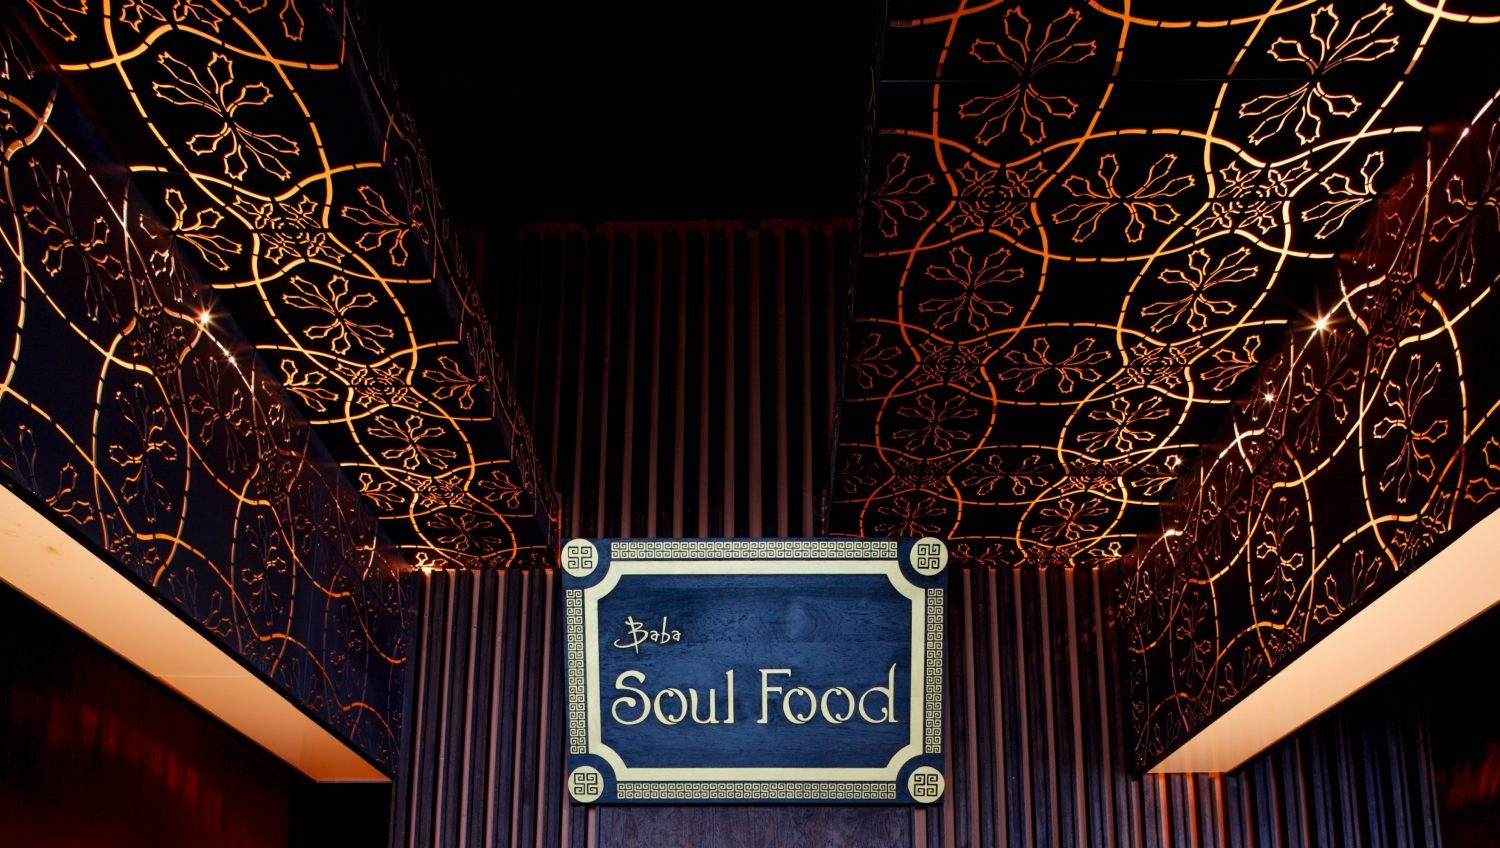 8-Baba-Soul-Food-Thai-Cuisine-Best-Restaurant-in-Phuket